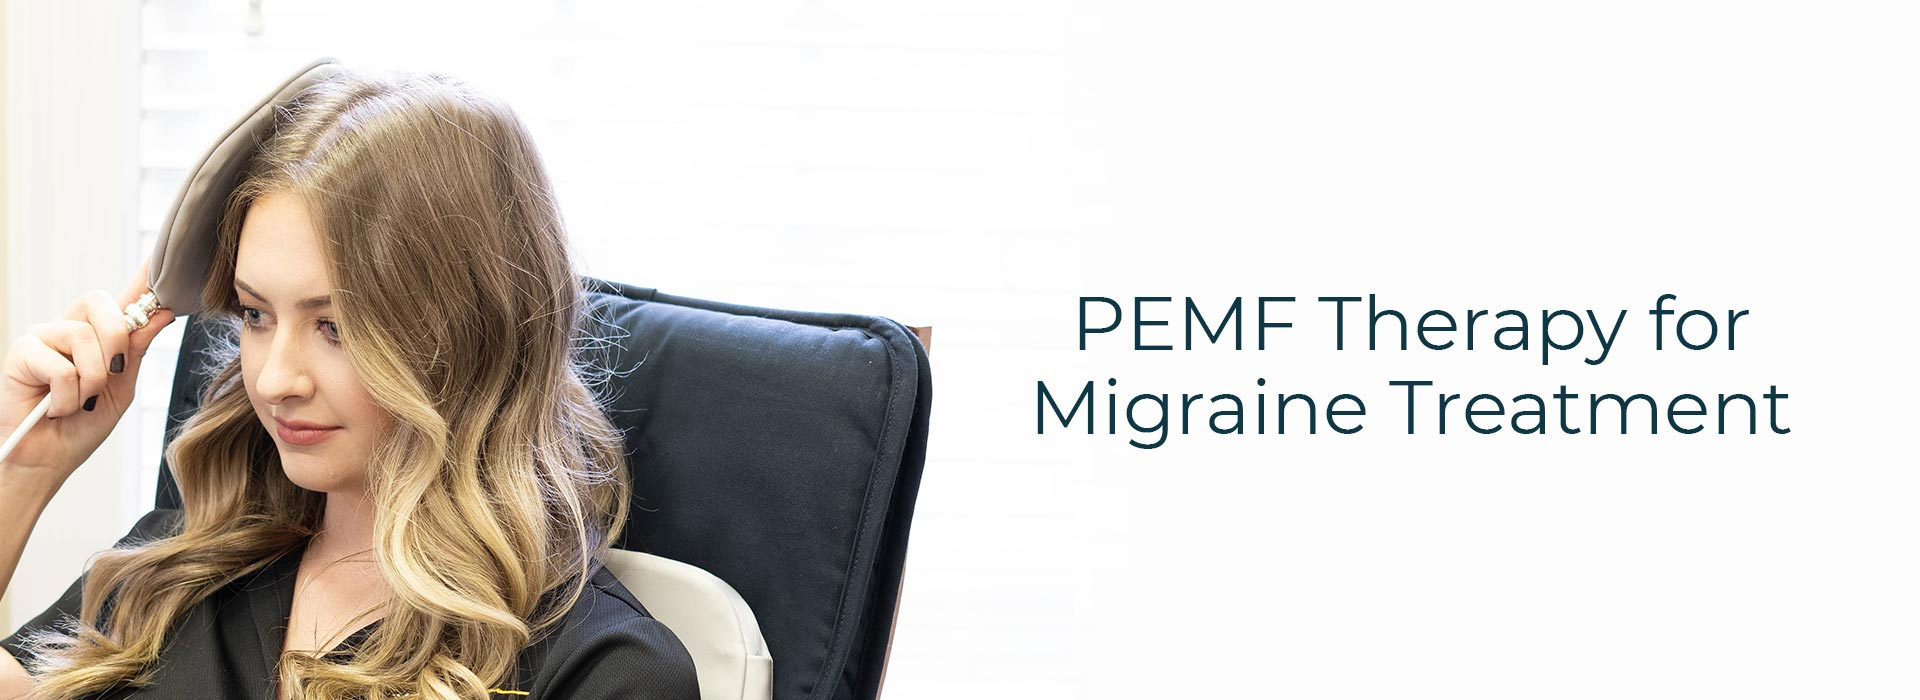 PEMF Therapy for Migraine Treatment